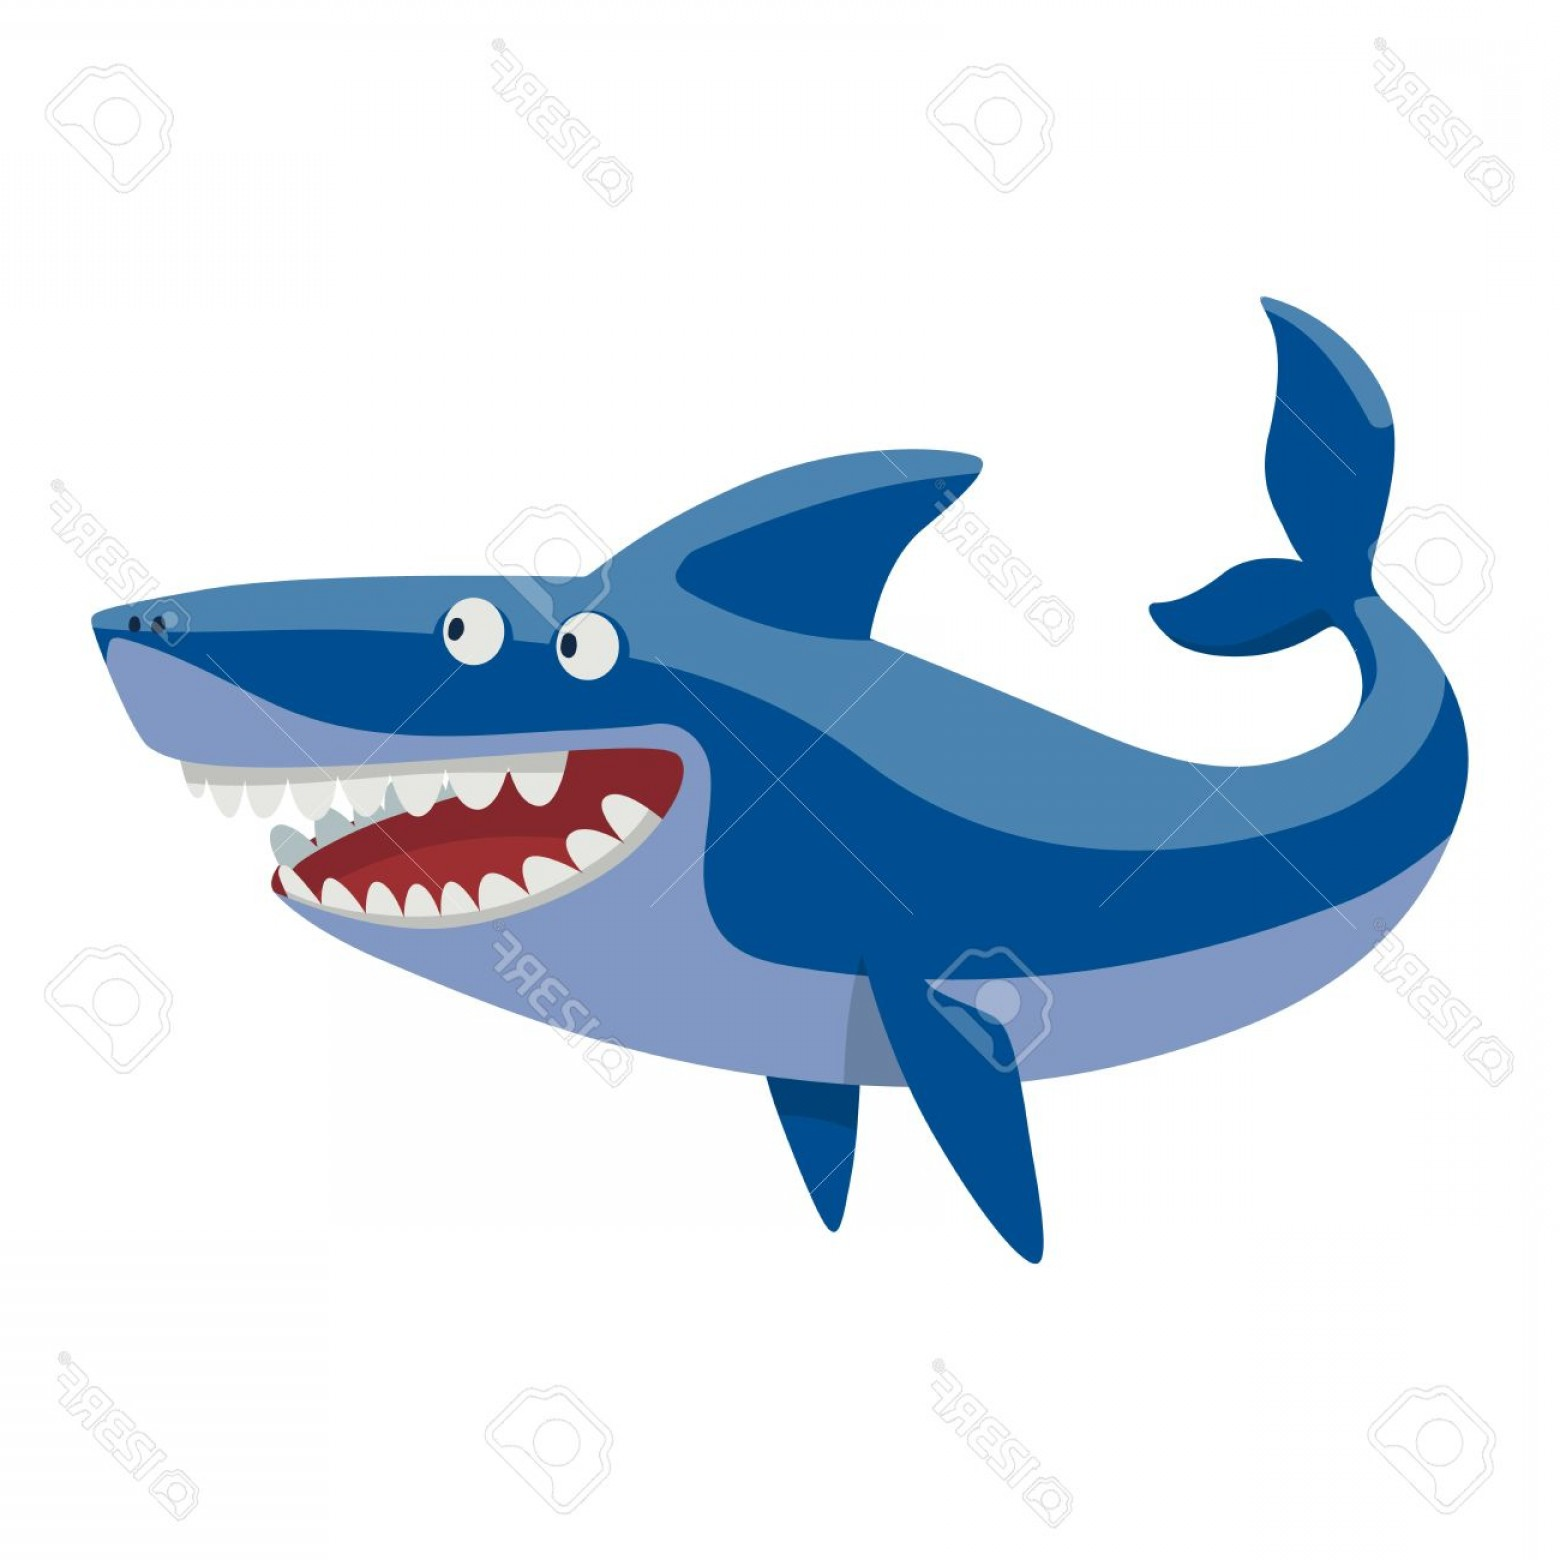 Cool Evil Vectors: Photostock Vector Vector Illustration Toothy White Swimming Angry Shark Animal Sea Isolated Shark Character Underwater